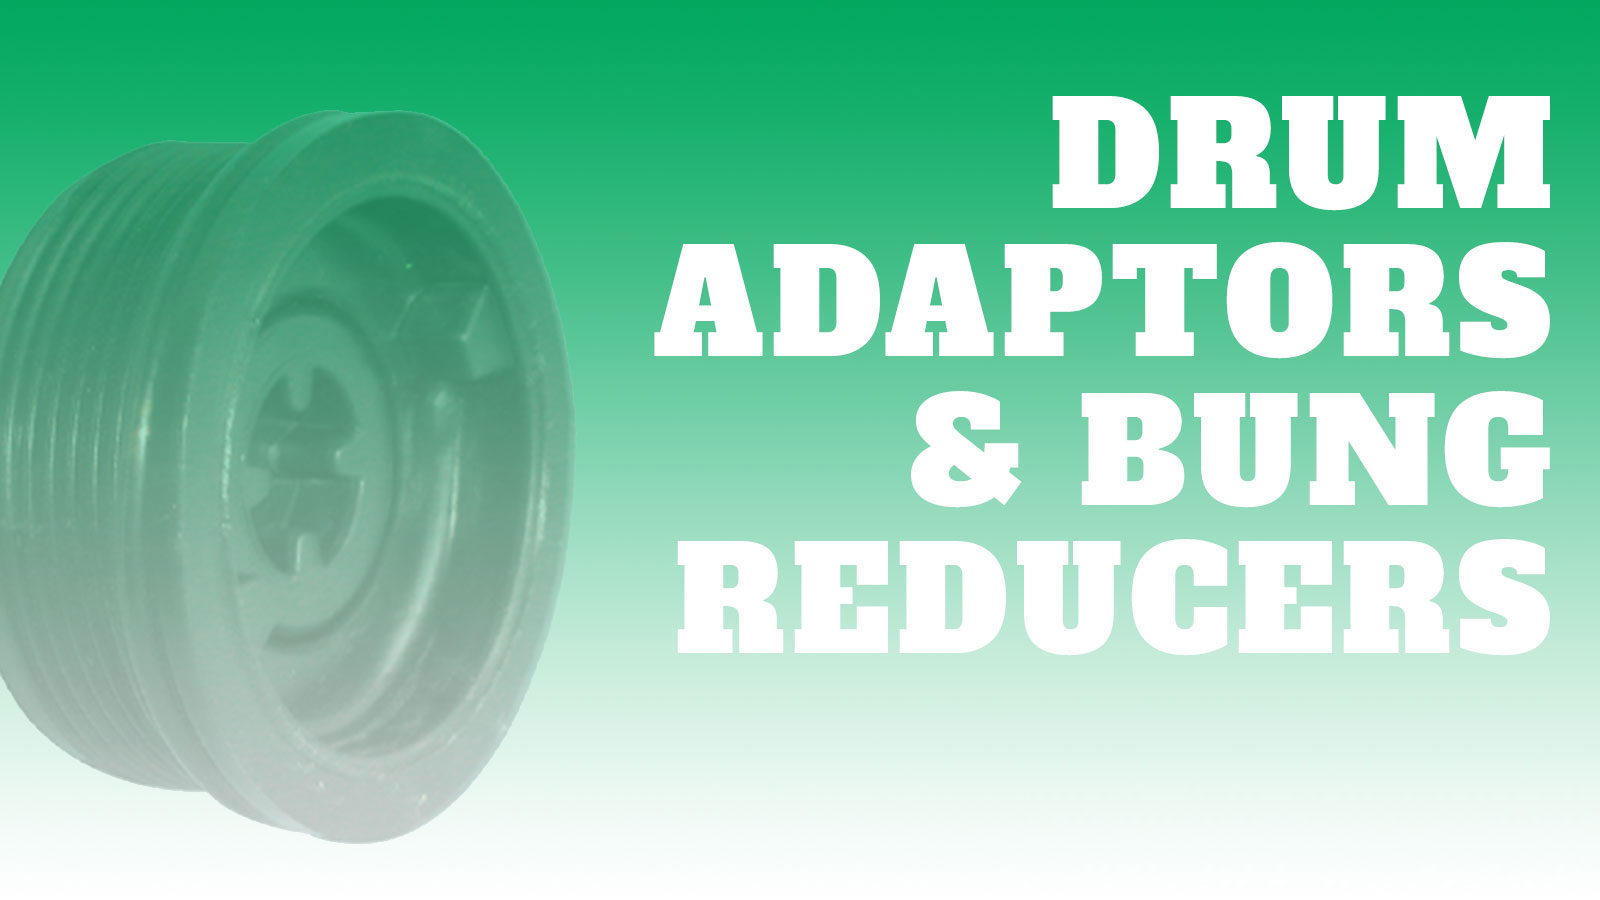 DrumHandling-Adaptors-&-Bungs-Reducers